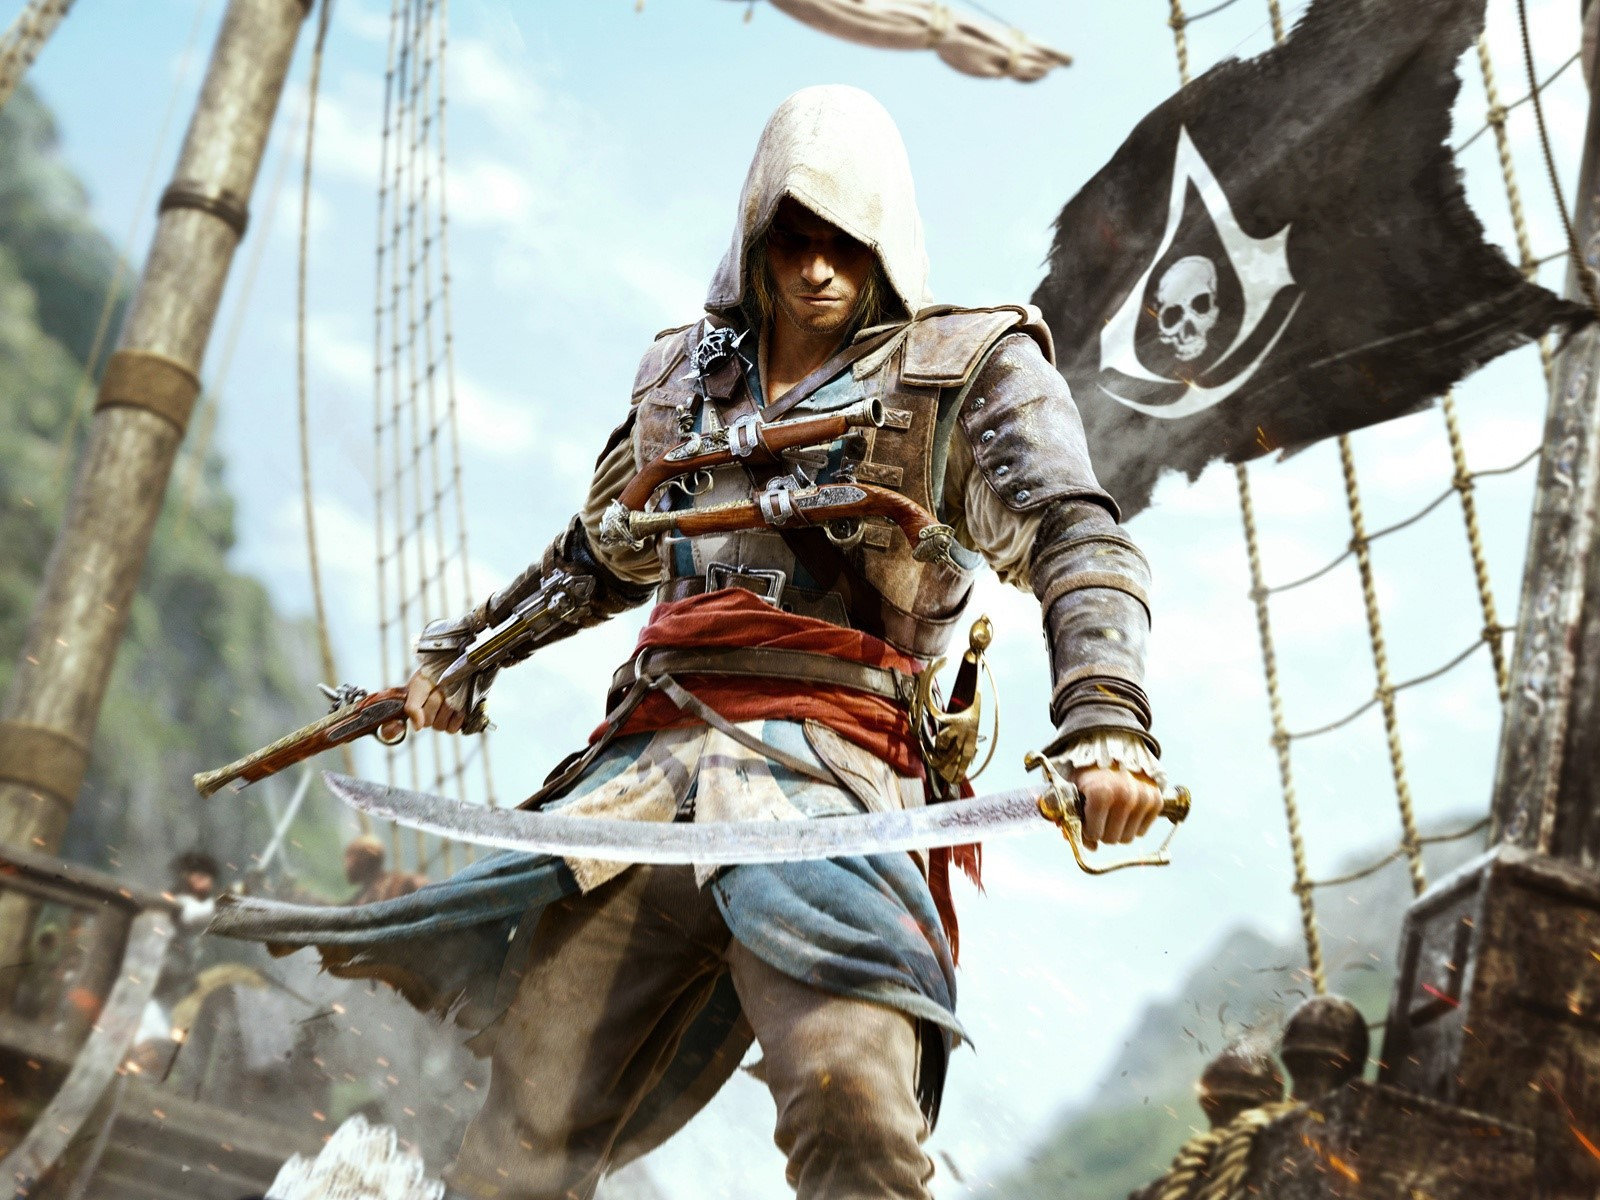 Fondo de pantalla de Assassins Creed 4 Imágenes